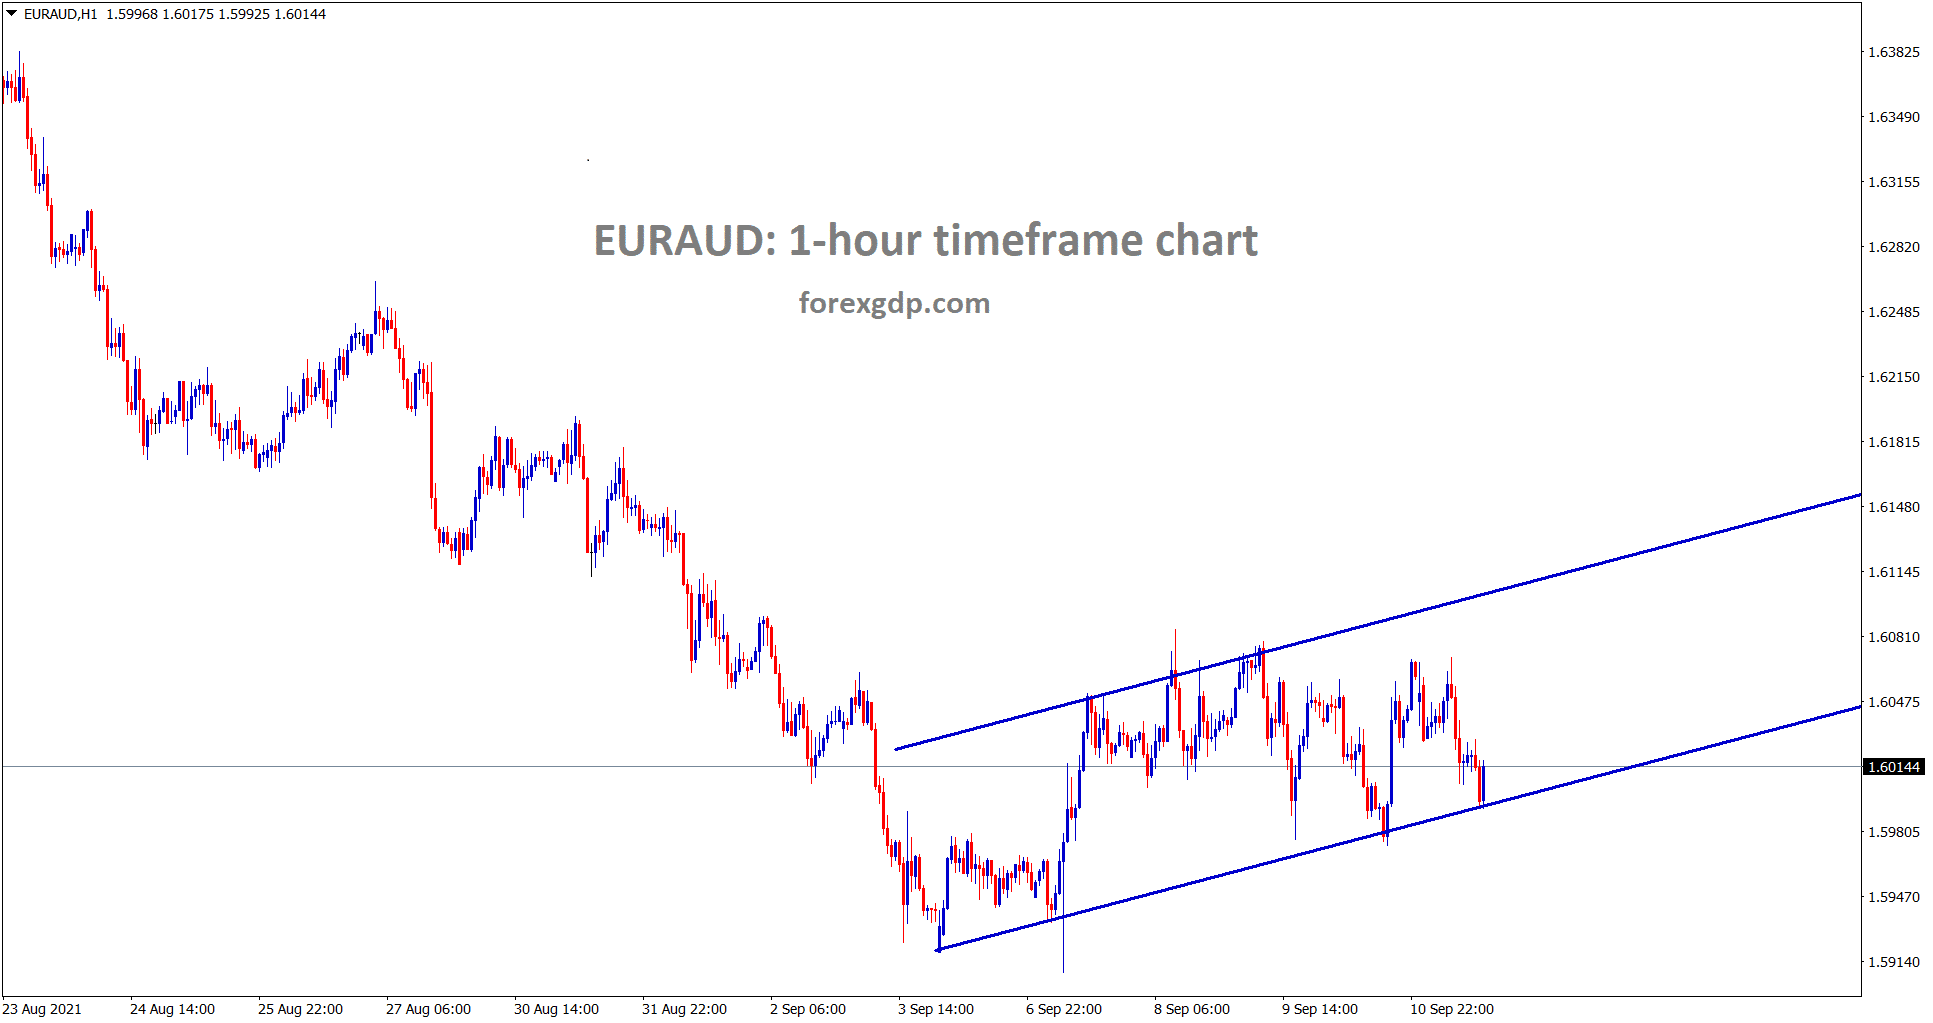 EURAUD is moving in a minor ascending channel